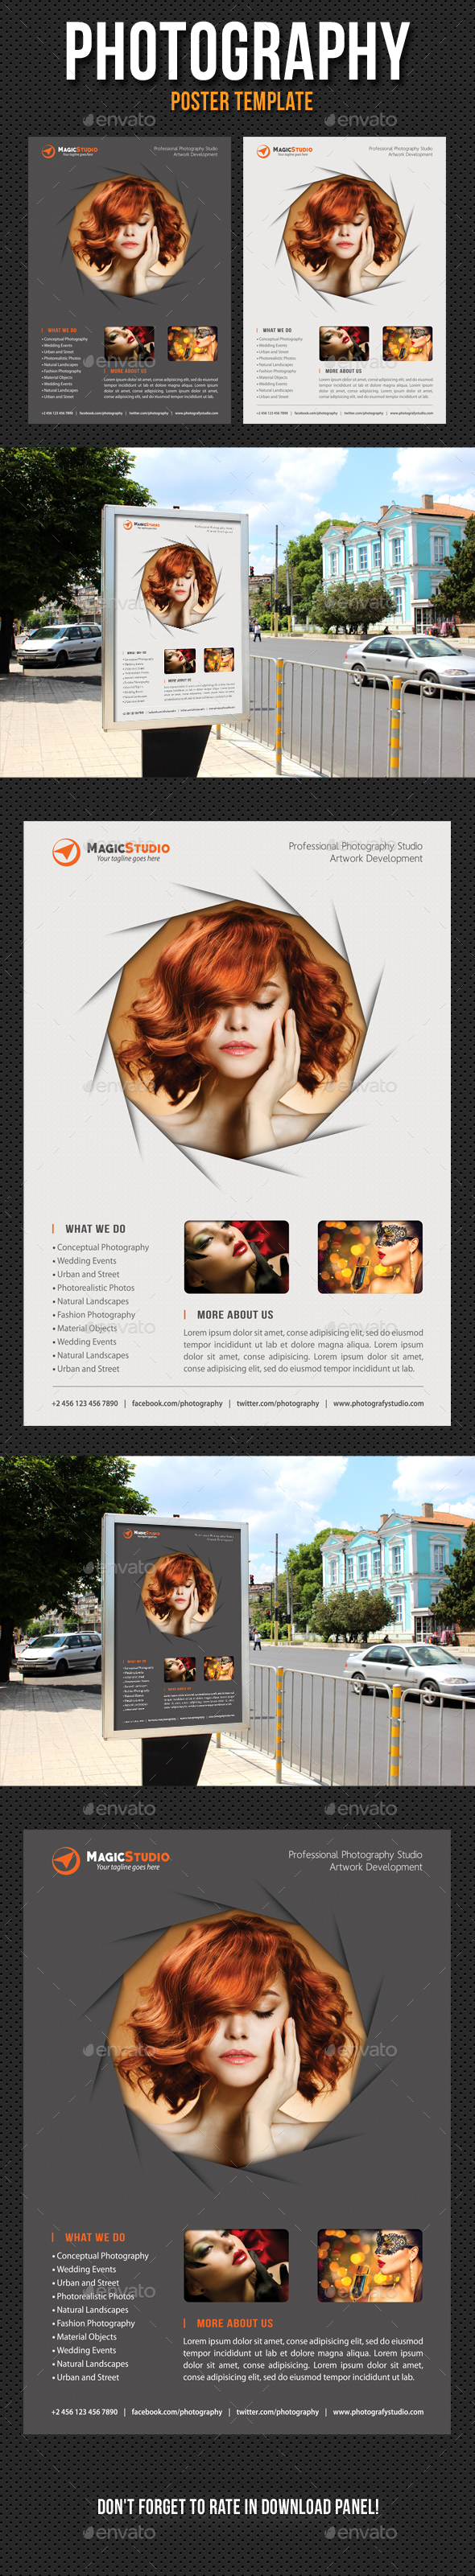 Photography Poster Template V08 - Signage Print Templates